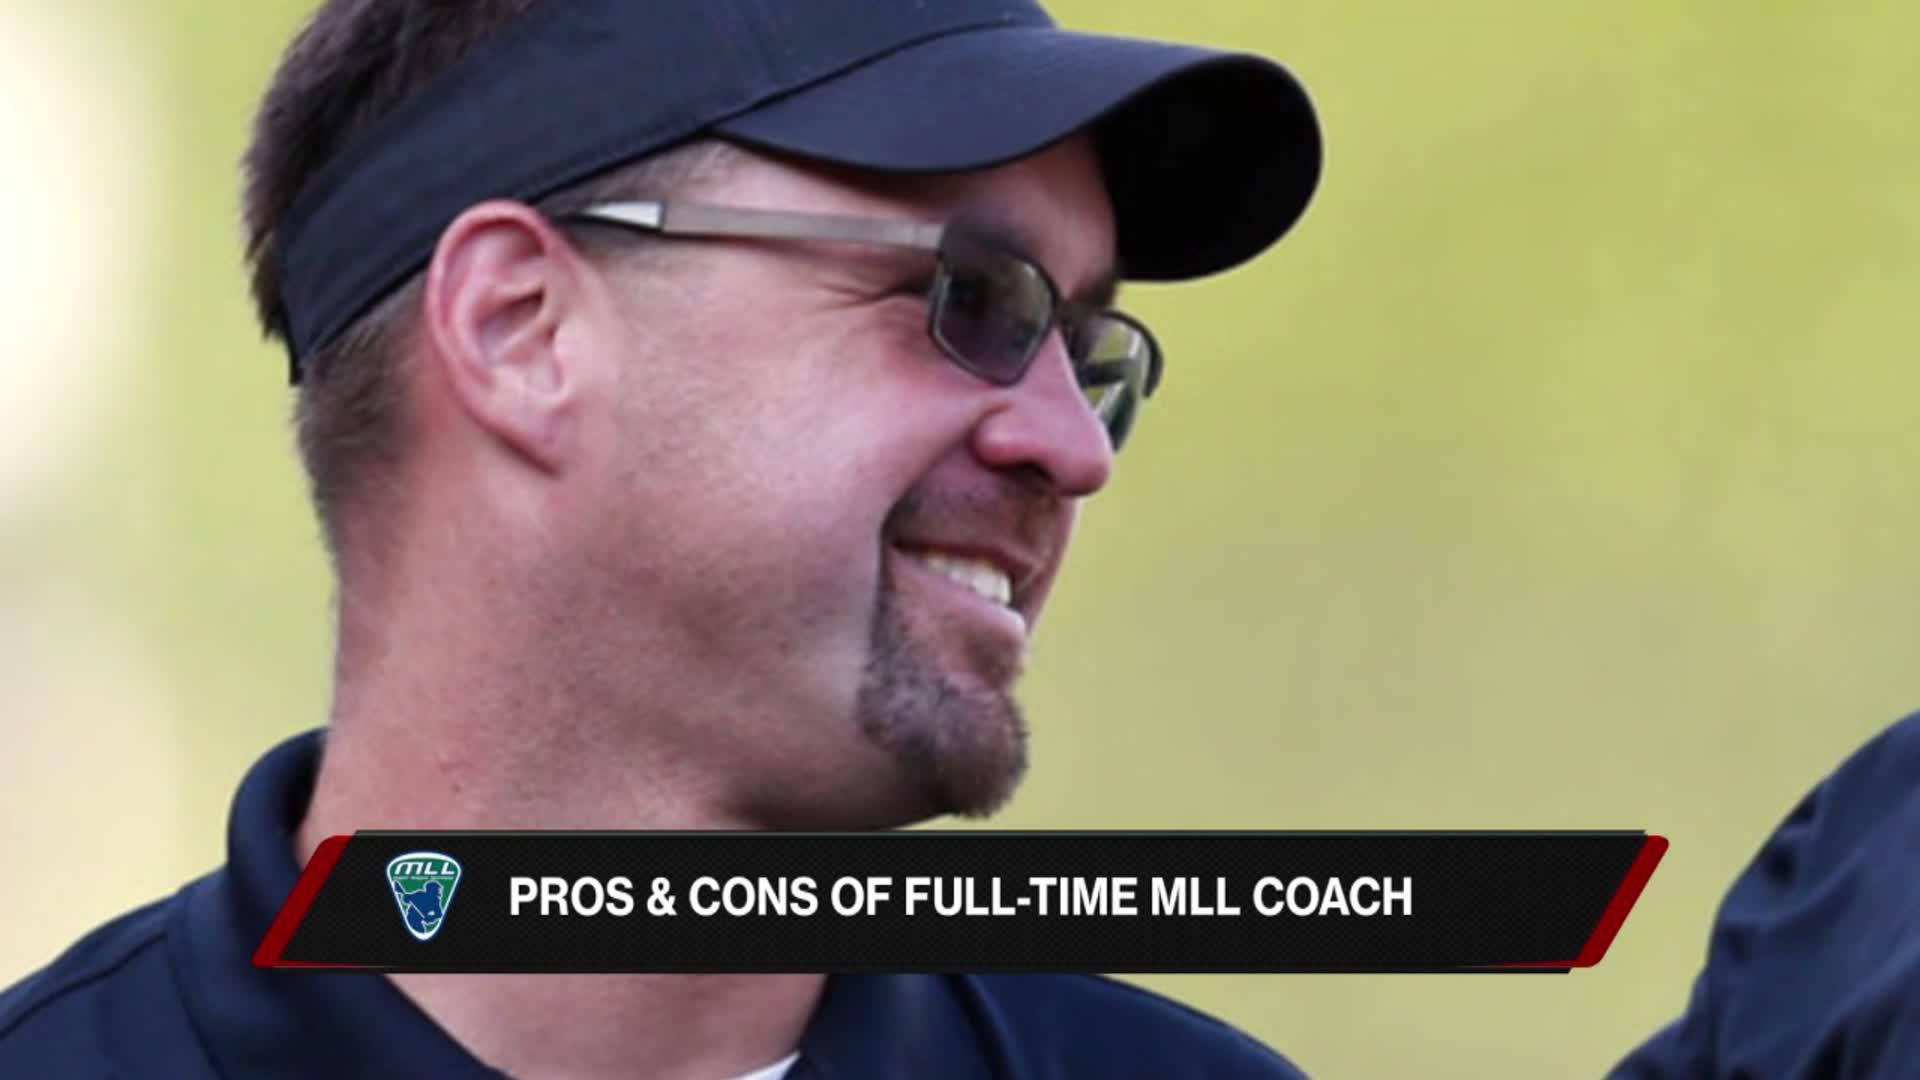 Pros & Cons of Being a Full-Time MLL Coach